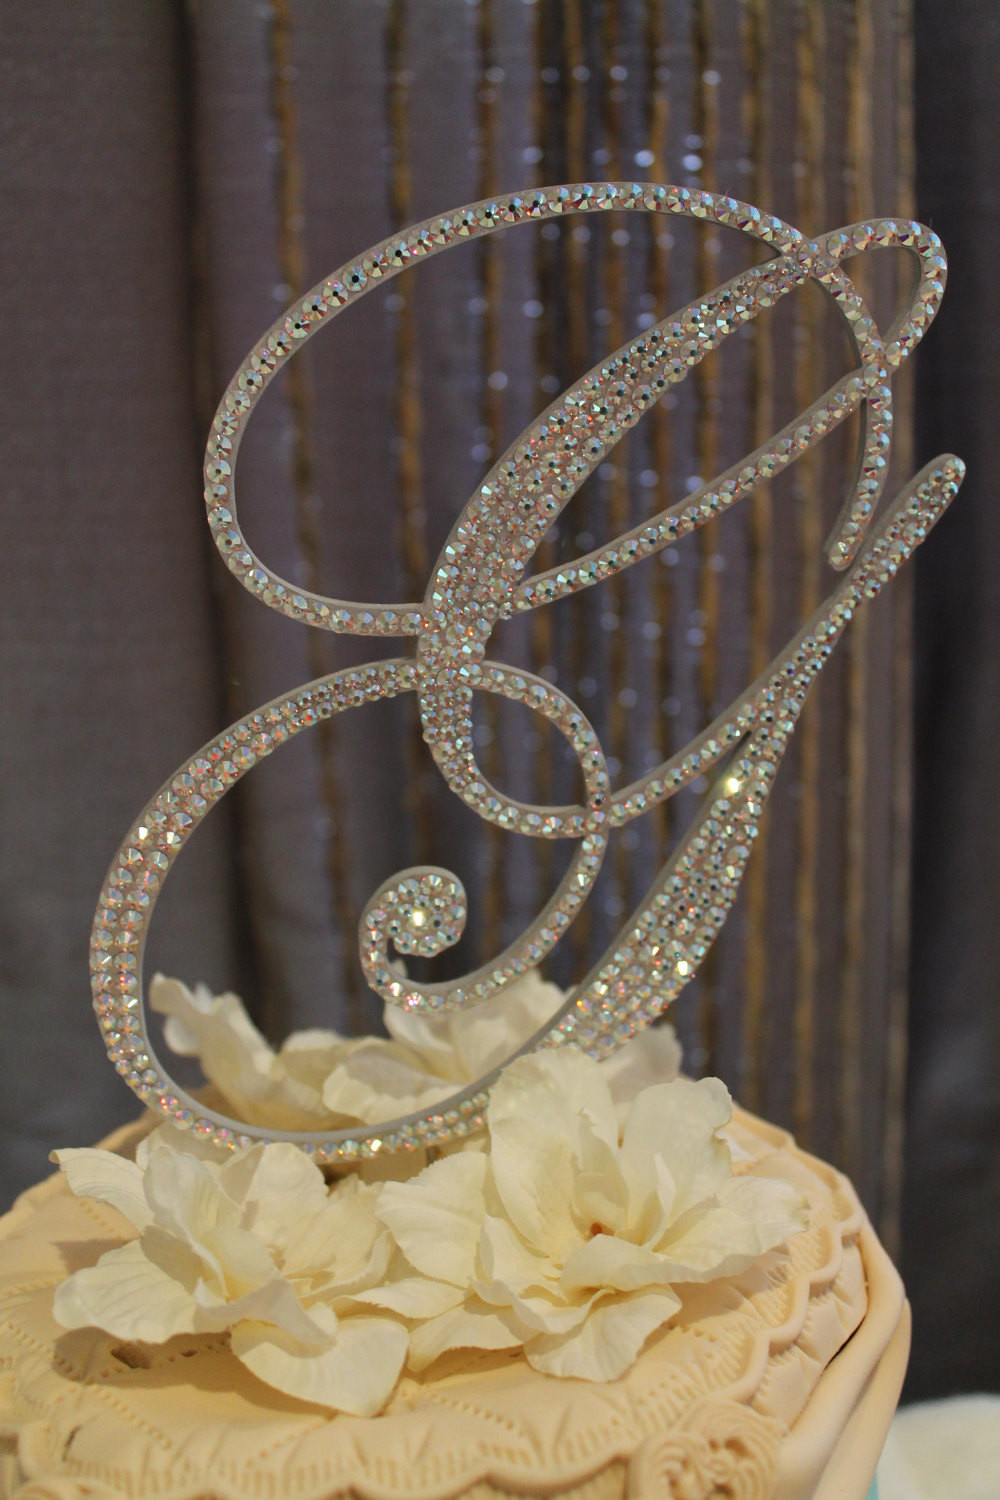 """Initial Cake Toppers For Wedding Cakes  Items similar to 6"""" Crystal Monogram Wedding Cake Topper"""